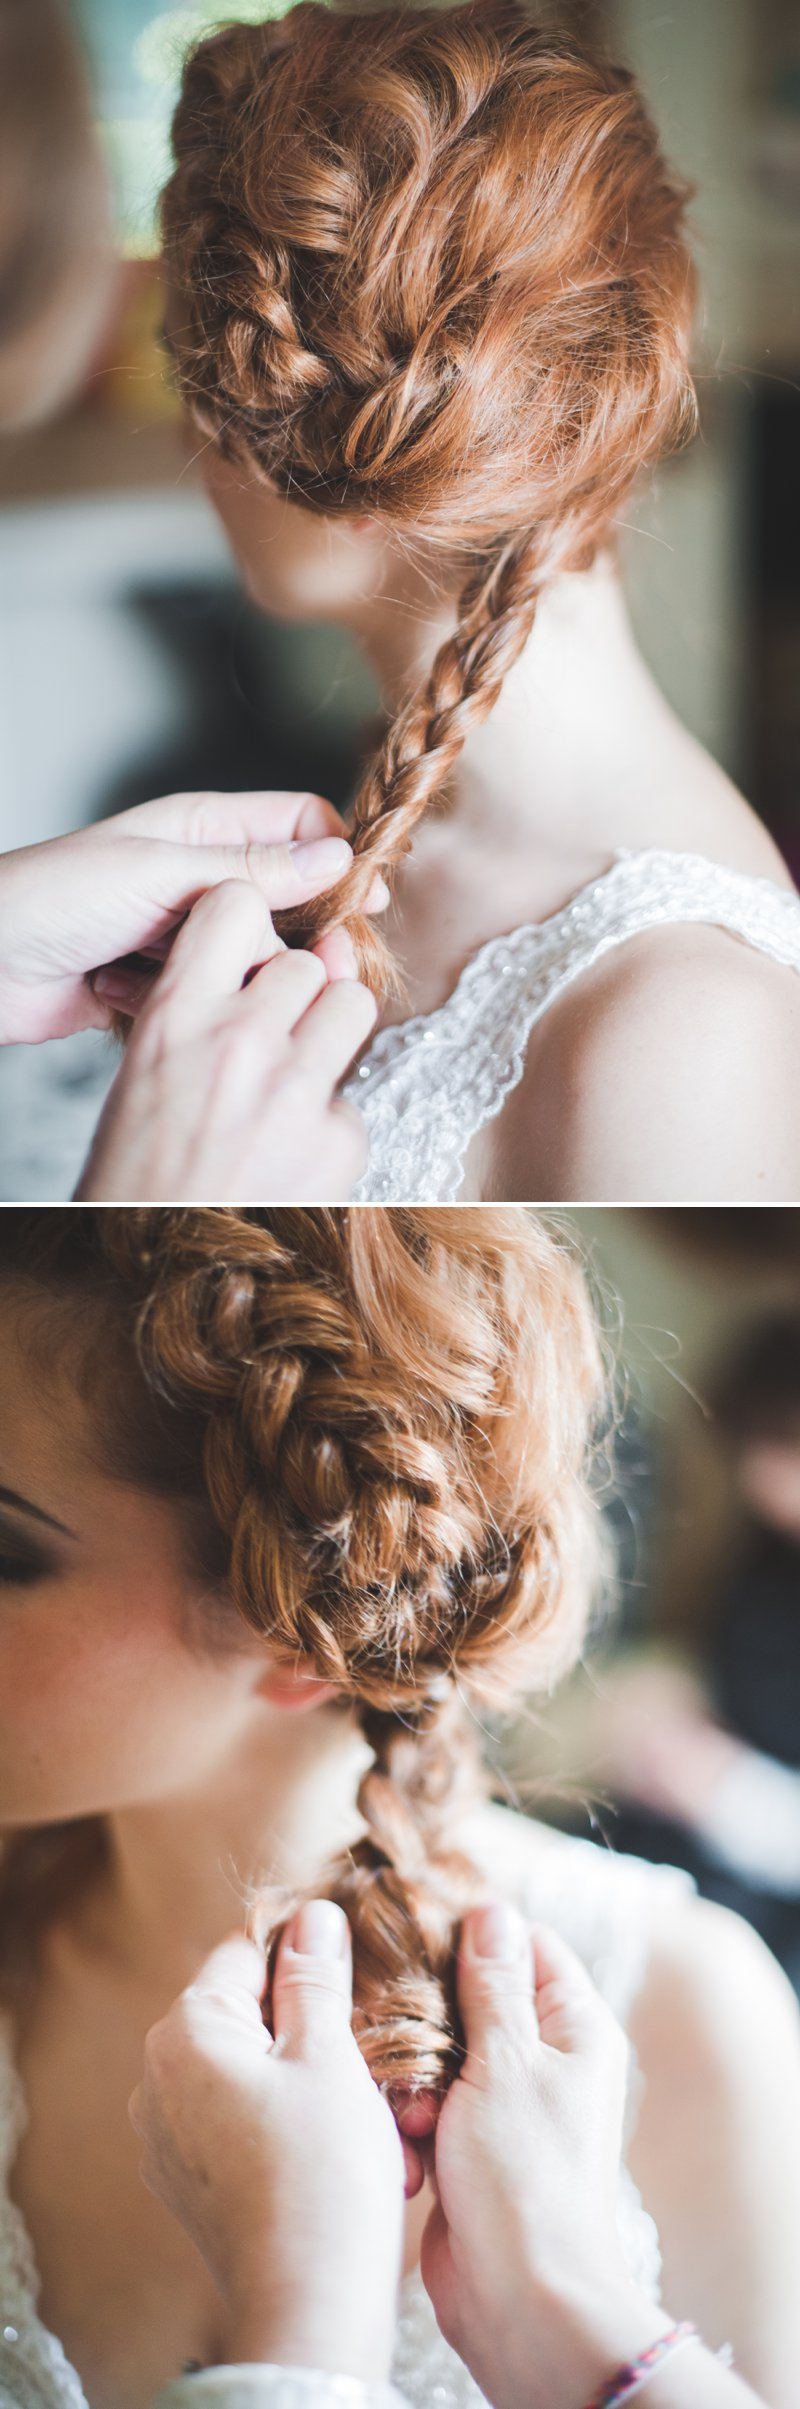 A Bridal Hair Tutorial Showing Brides How To Create Perfect Tousled Sexy Waves and A Boho Braided Updo For Your Wedding Day._0010